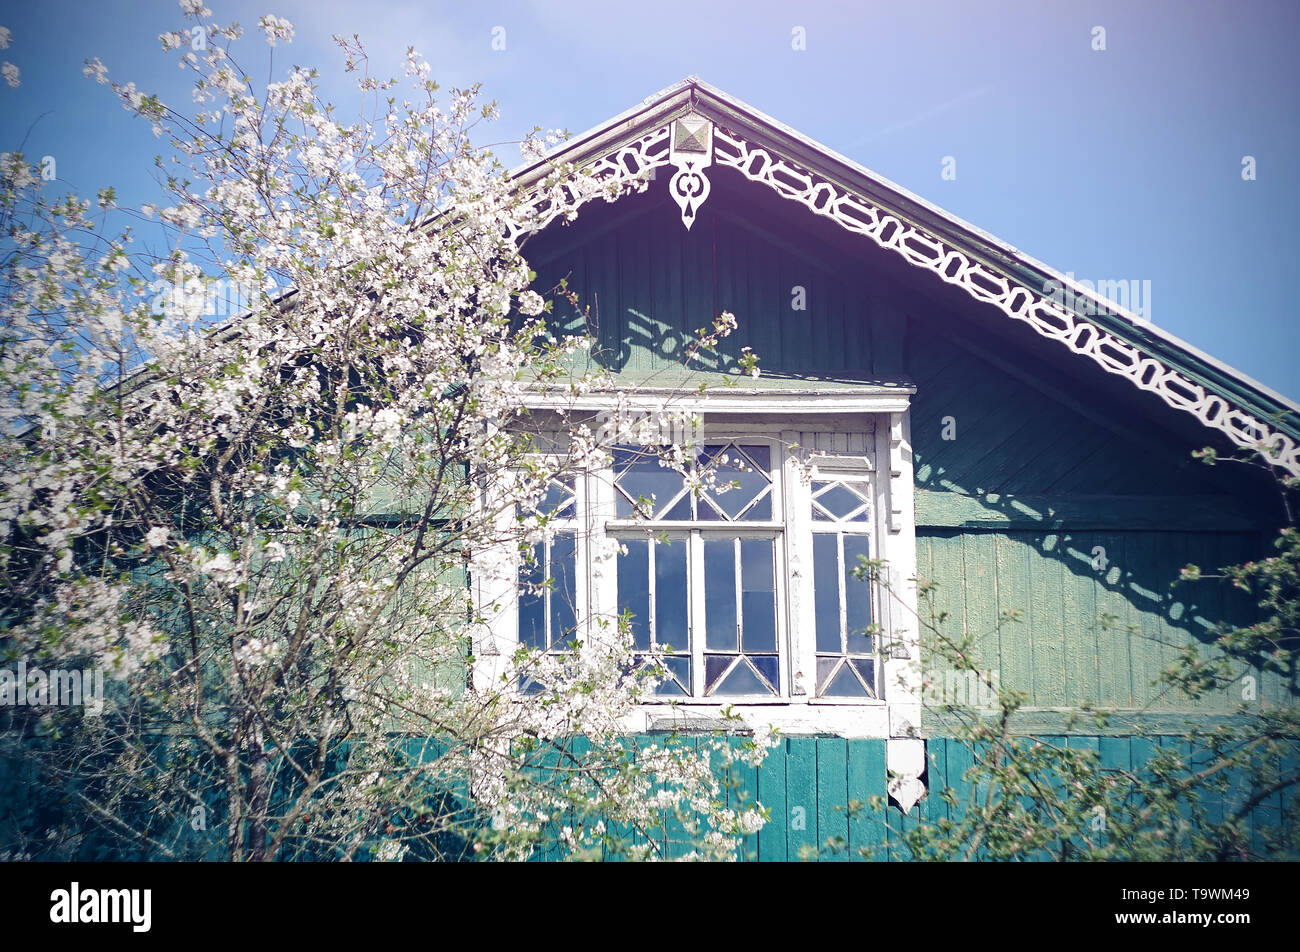 A beautiful native wooden village house of blue and turquoise color with a carved roof and a white frame on a beautiful window, next to which a cherry - Stock Image